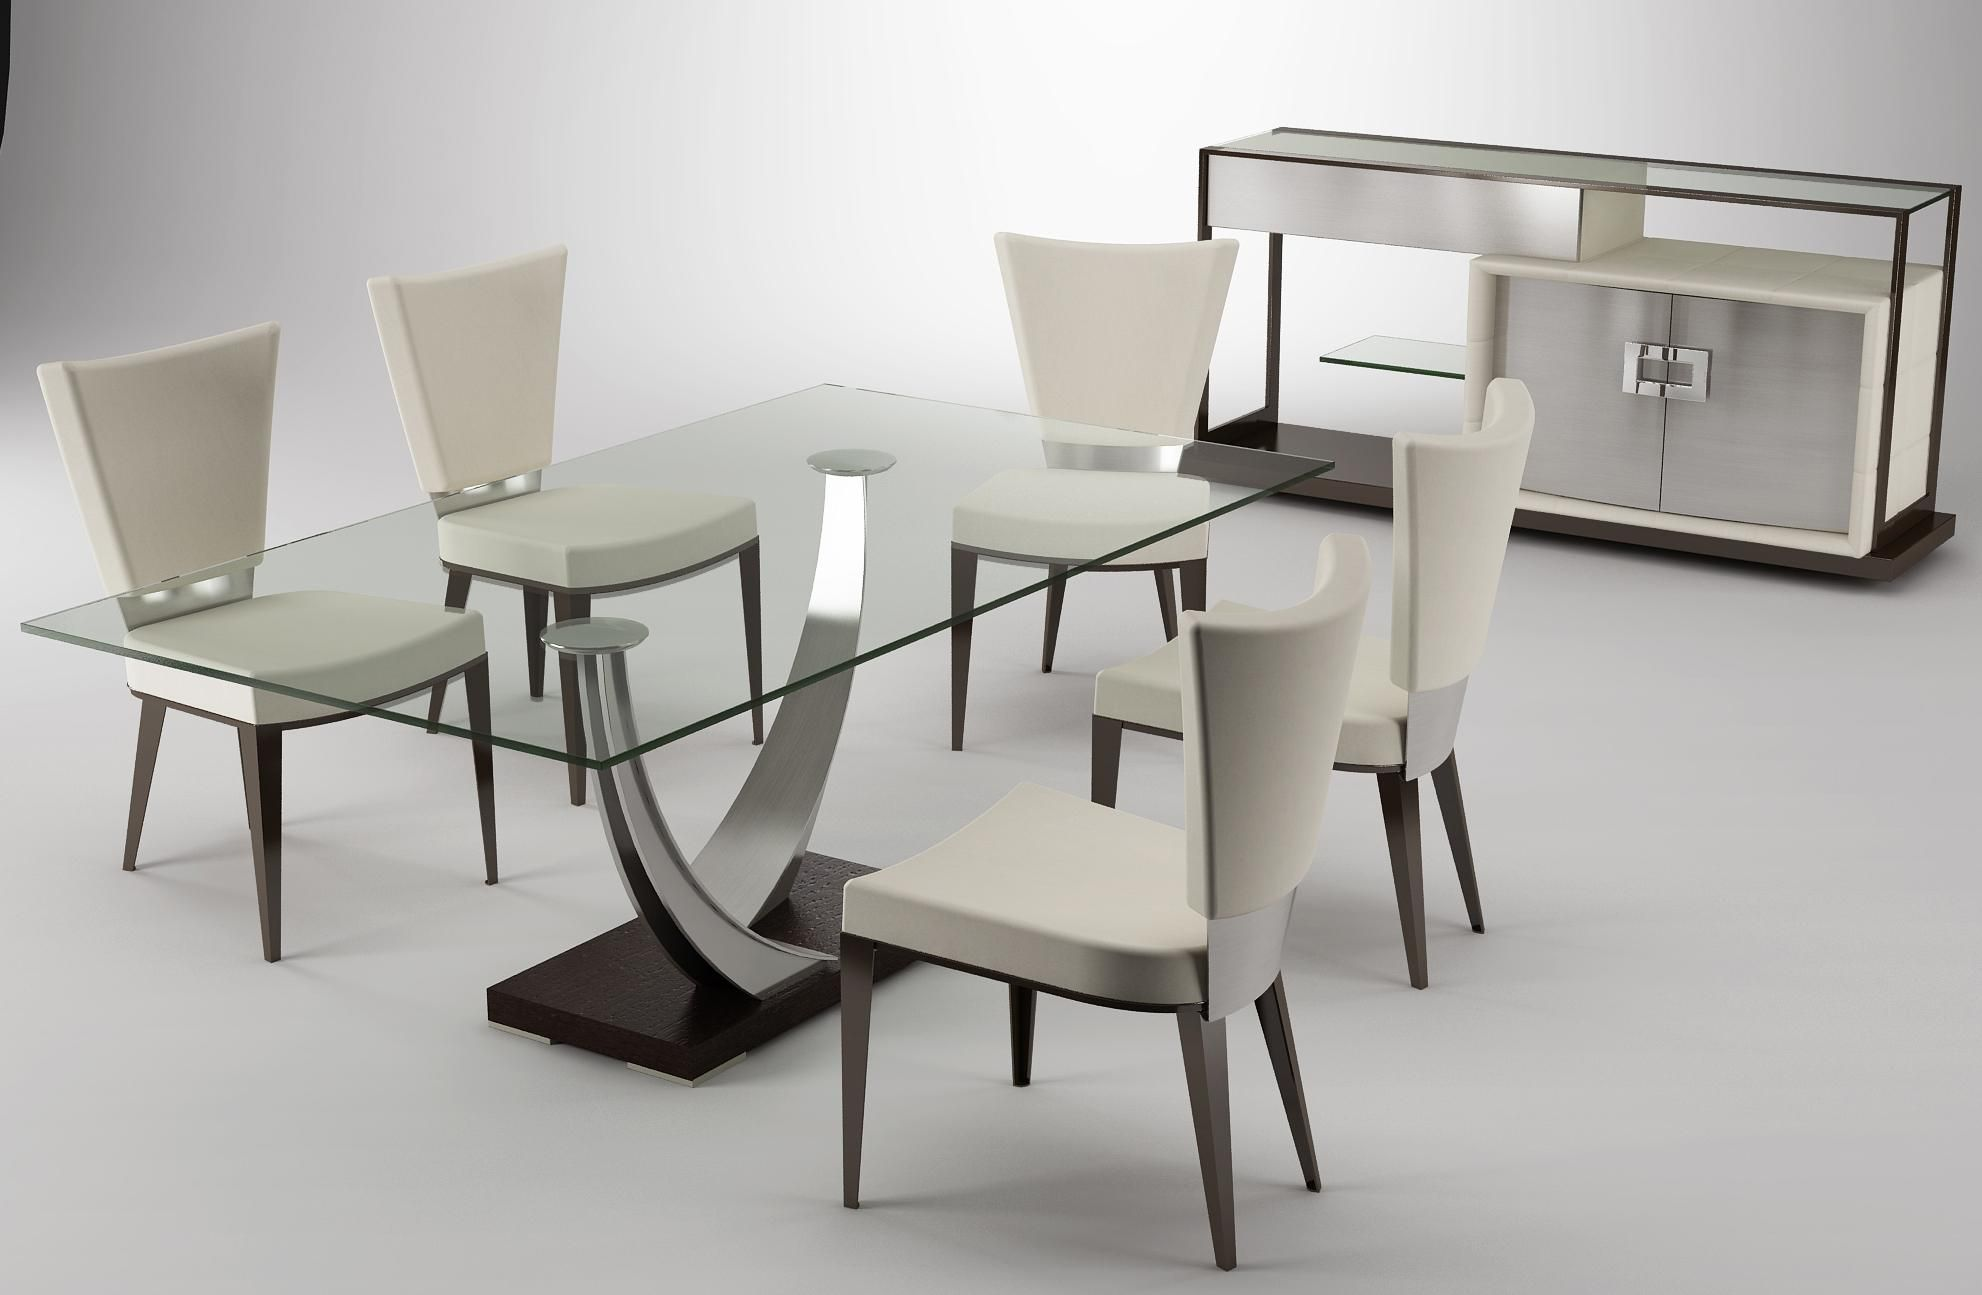 Amazing modern stylish dining room table set designs elite for Modern dining room table decor